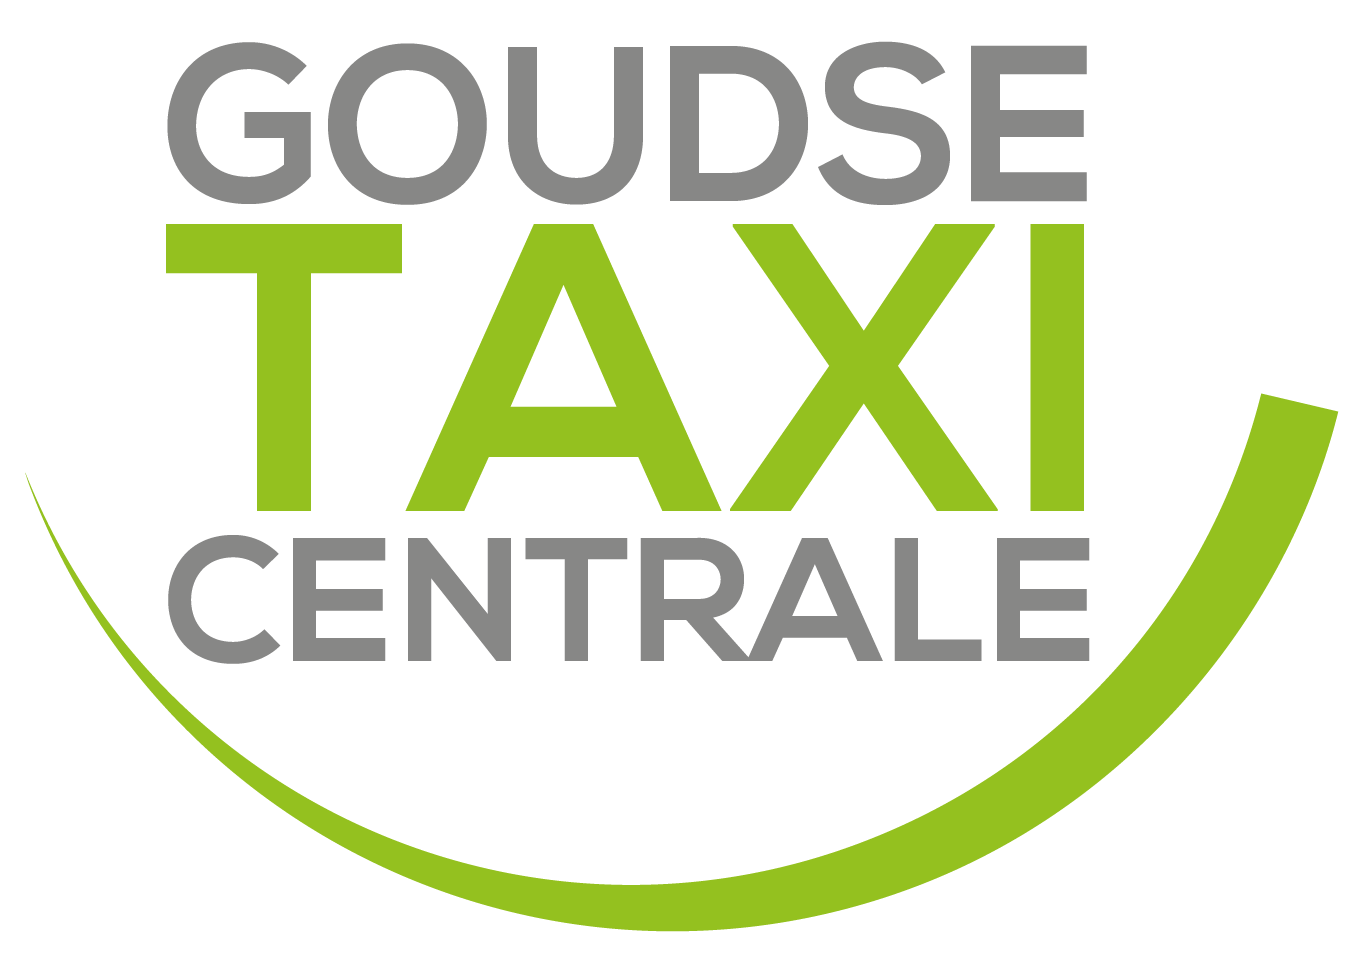 Goudse Taxi Centrale